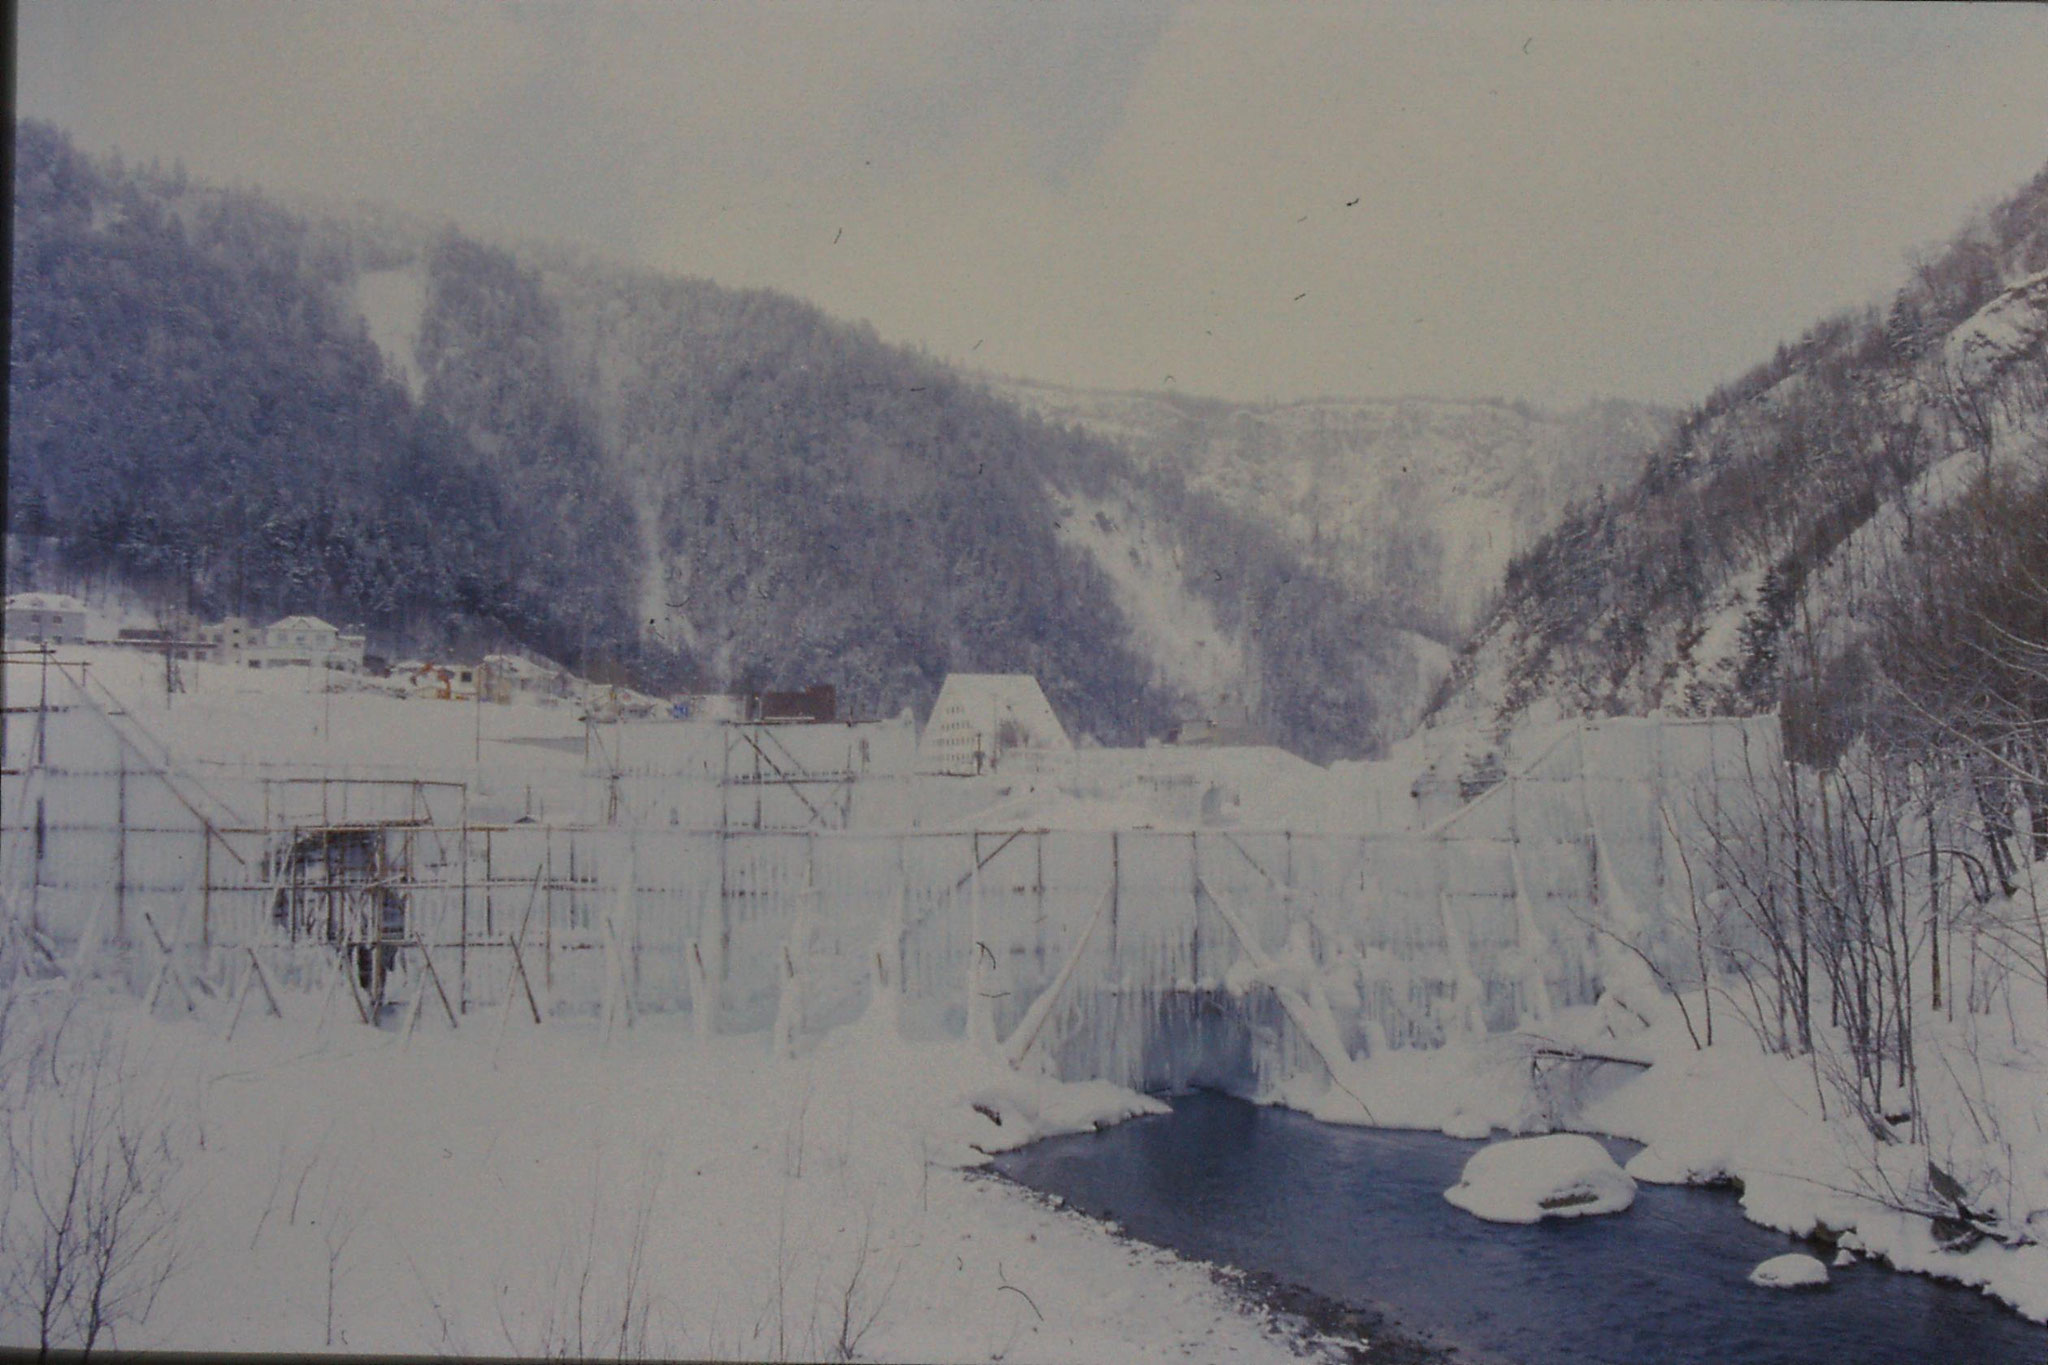 12/1/1989: 12: Sounkyo Onsen Gorge, preparing ice scuptures